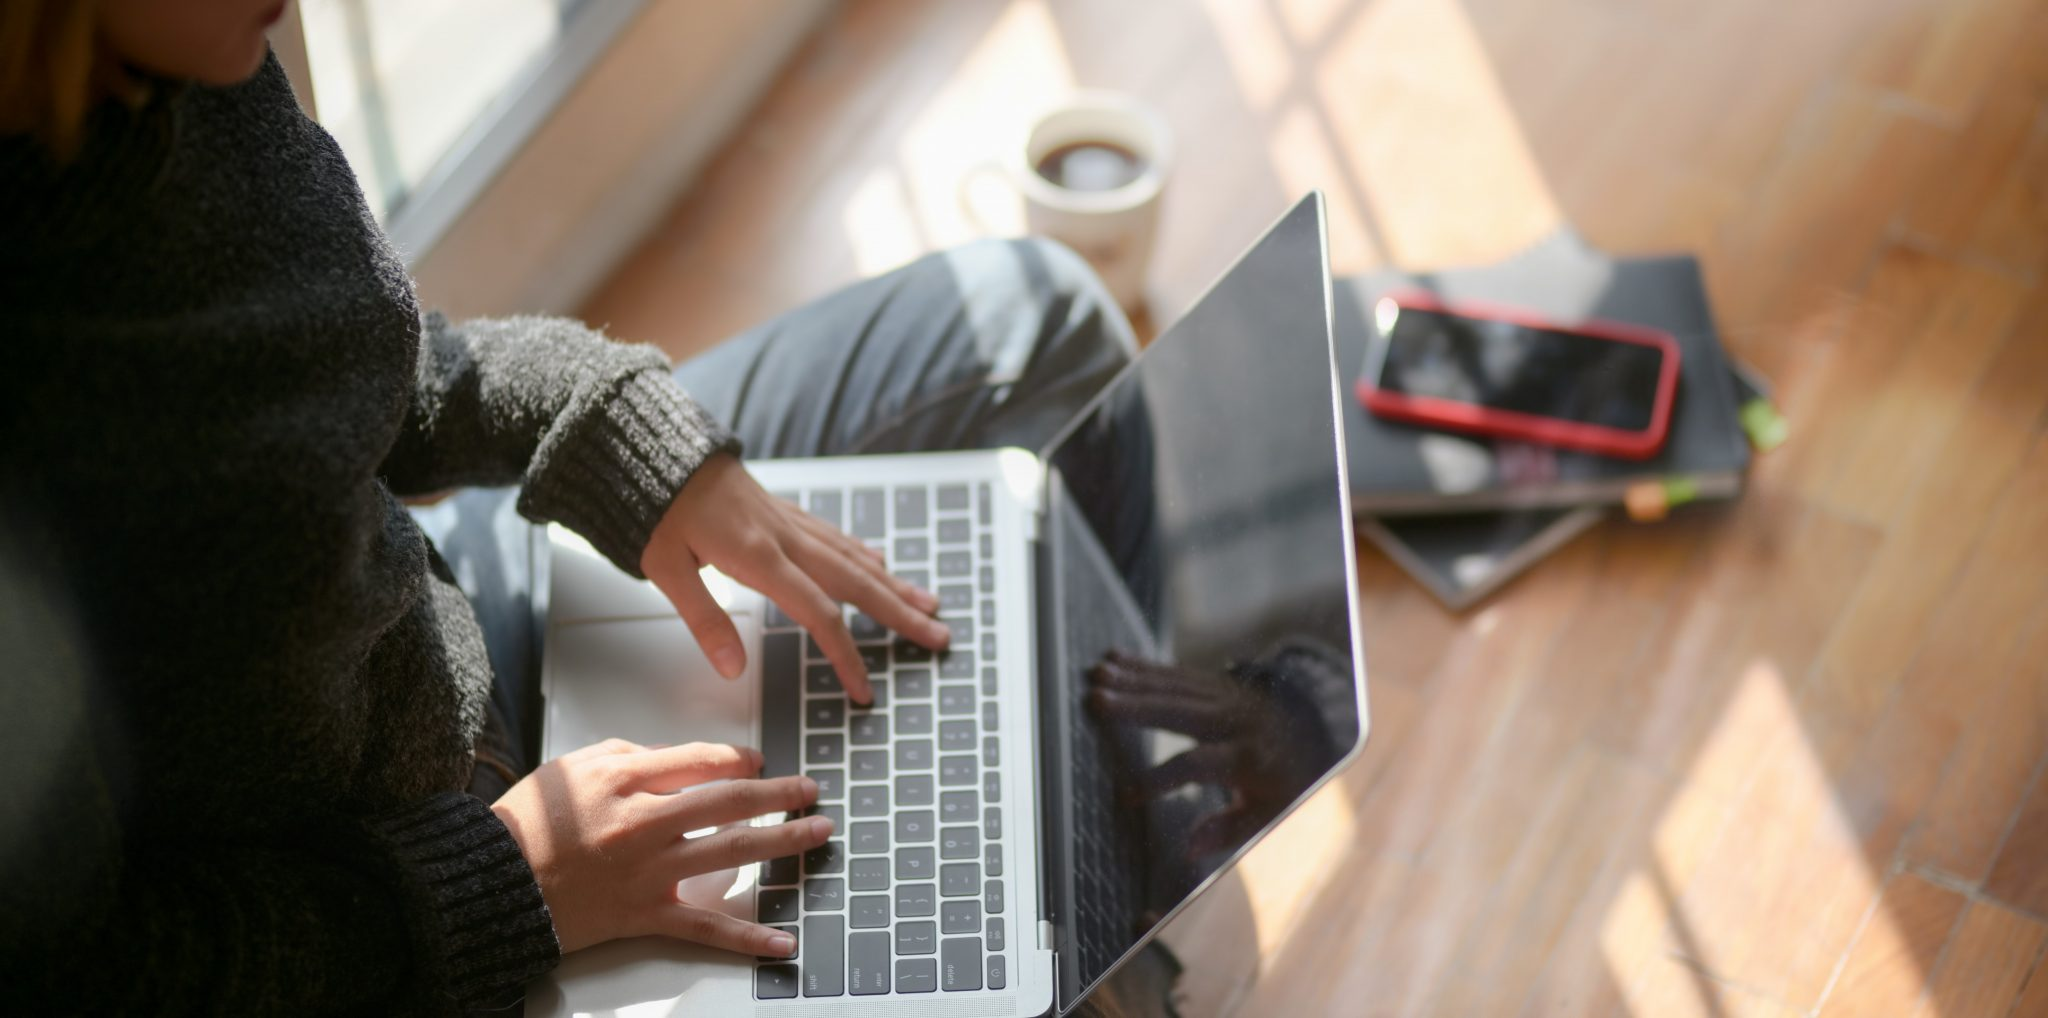 woman-in-gray-sweater-typing-on-laptop-3759059